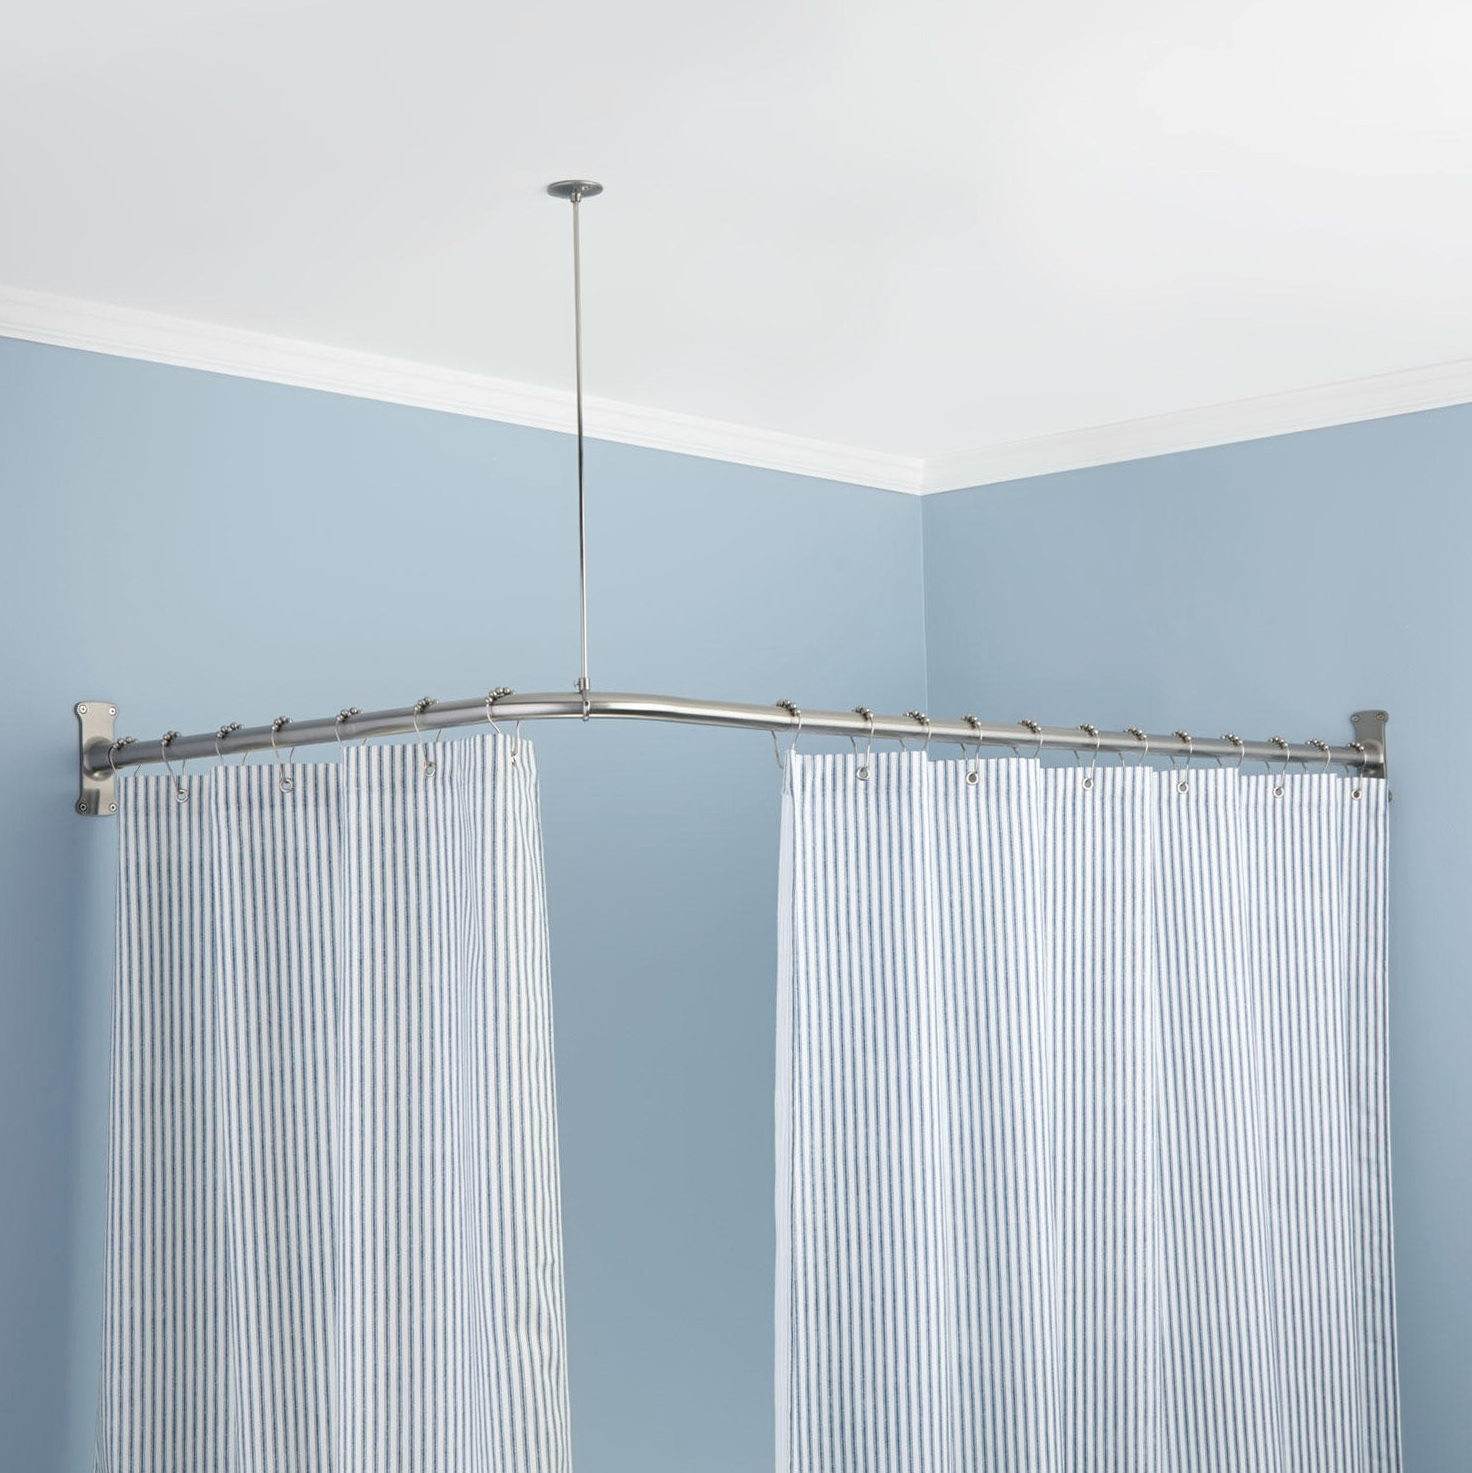 Ceiling suspended shower curtain rod